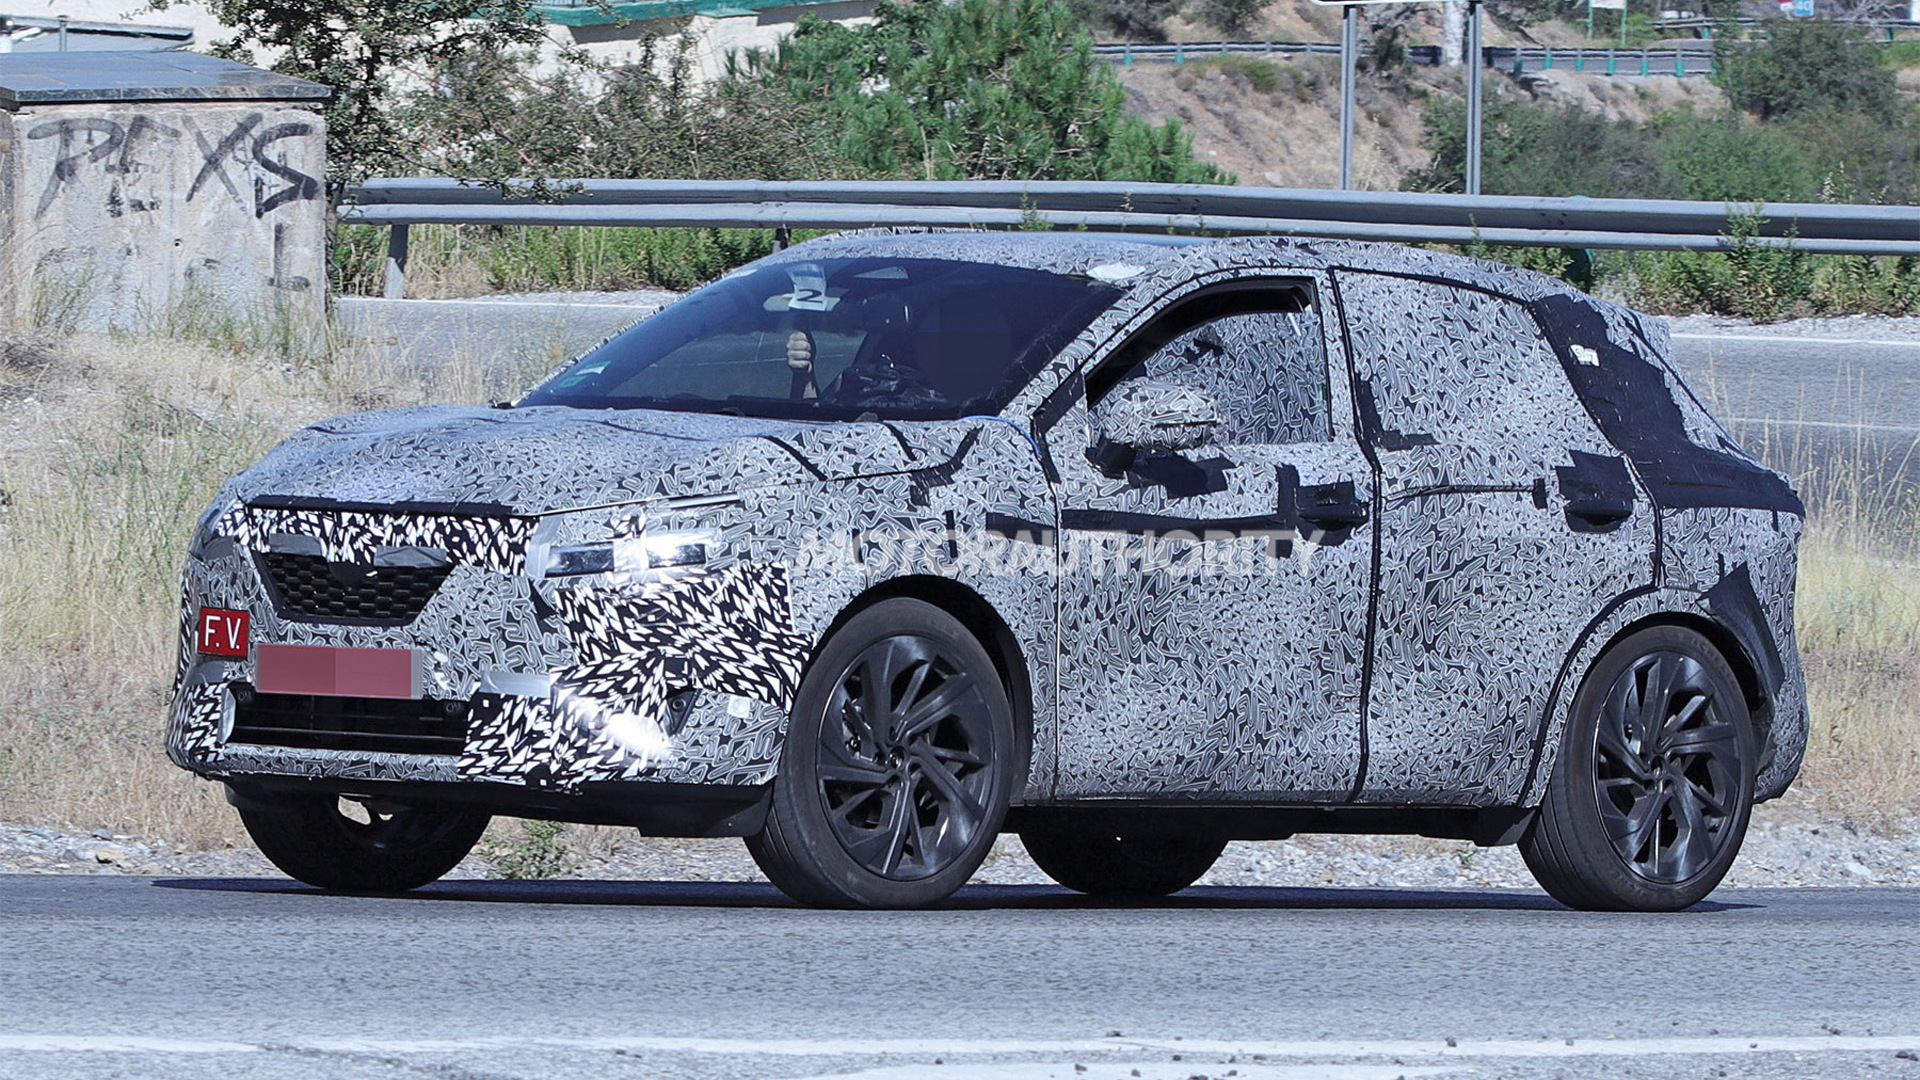 2022 Nissan Rogue Sport spy shots - Photo credit: S. Baldauf/SB-Medien